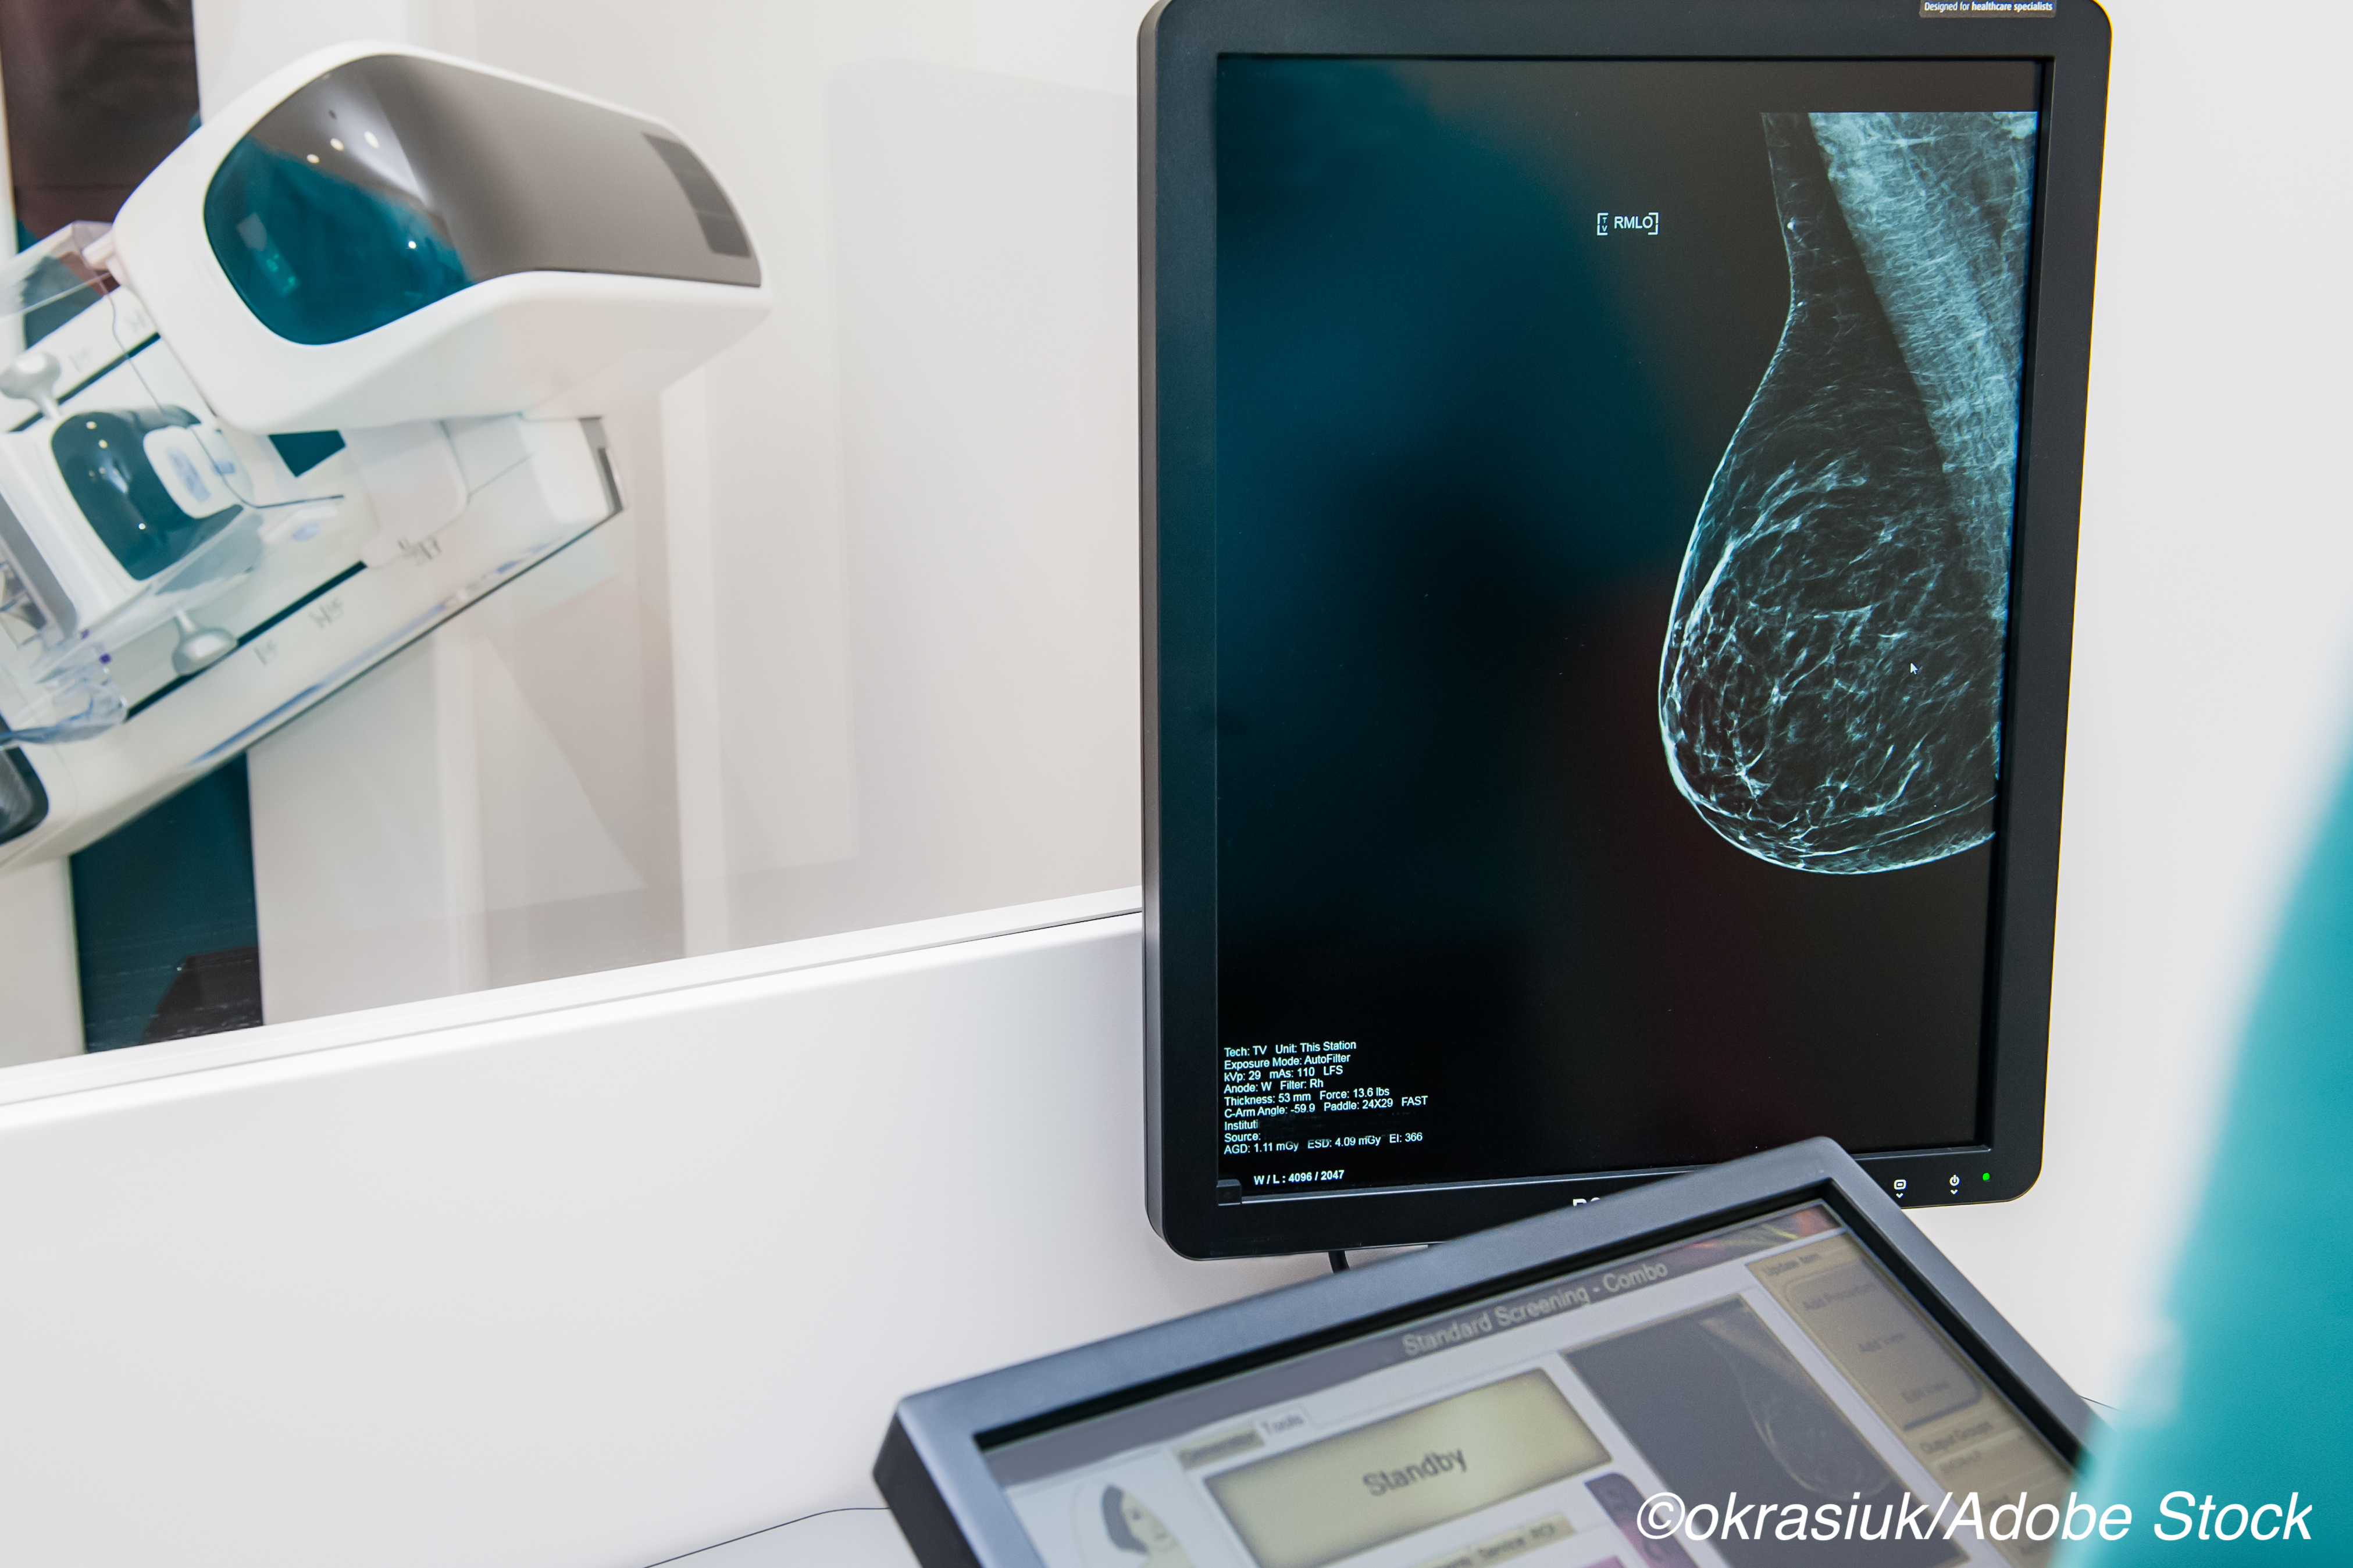 AI as Effective as Radiologists in Assessing Mammograms